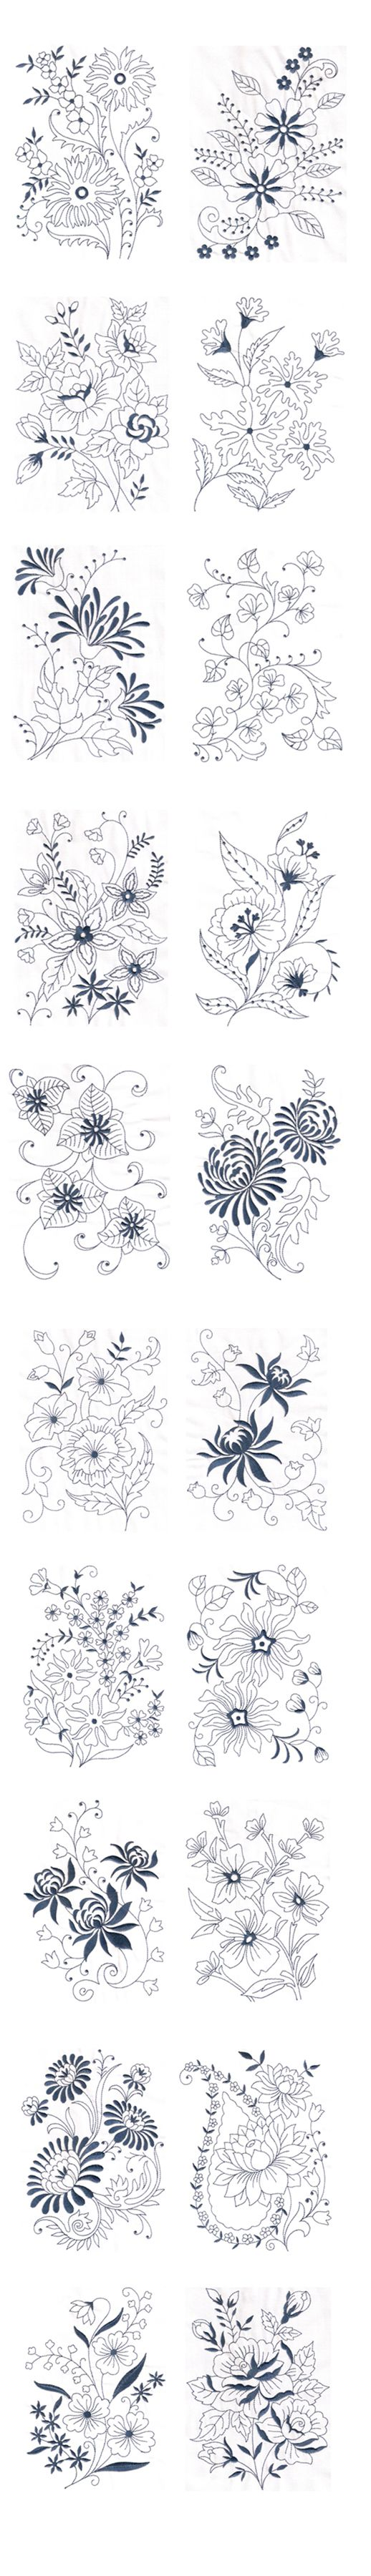 Vintage Floral Design - Machine Embroidery Design on Behance